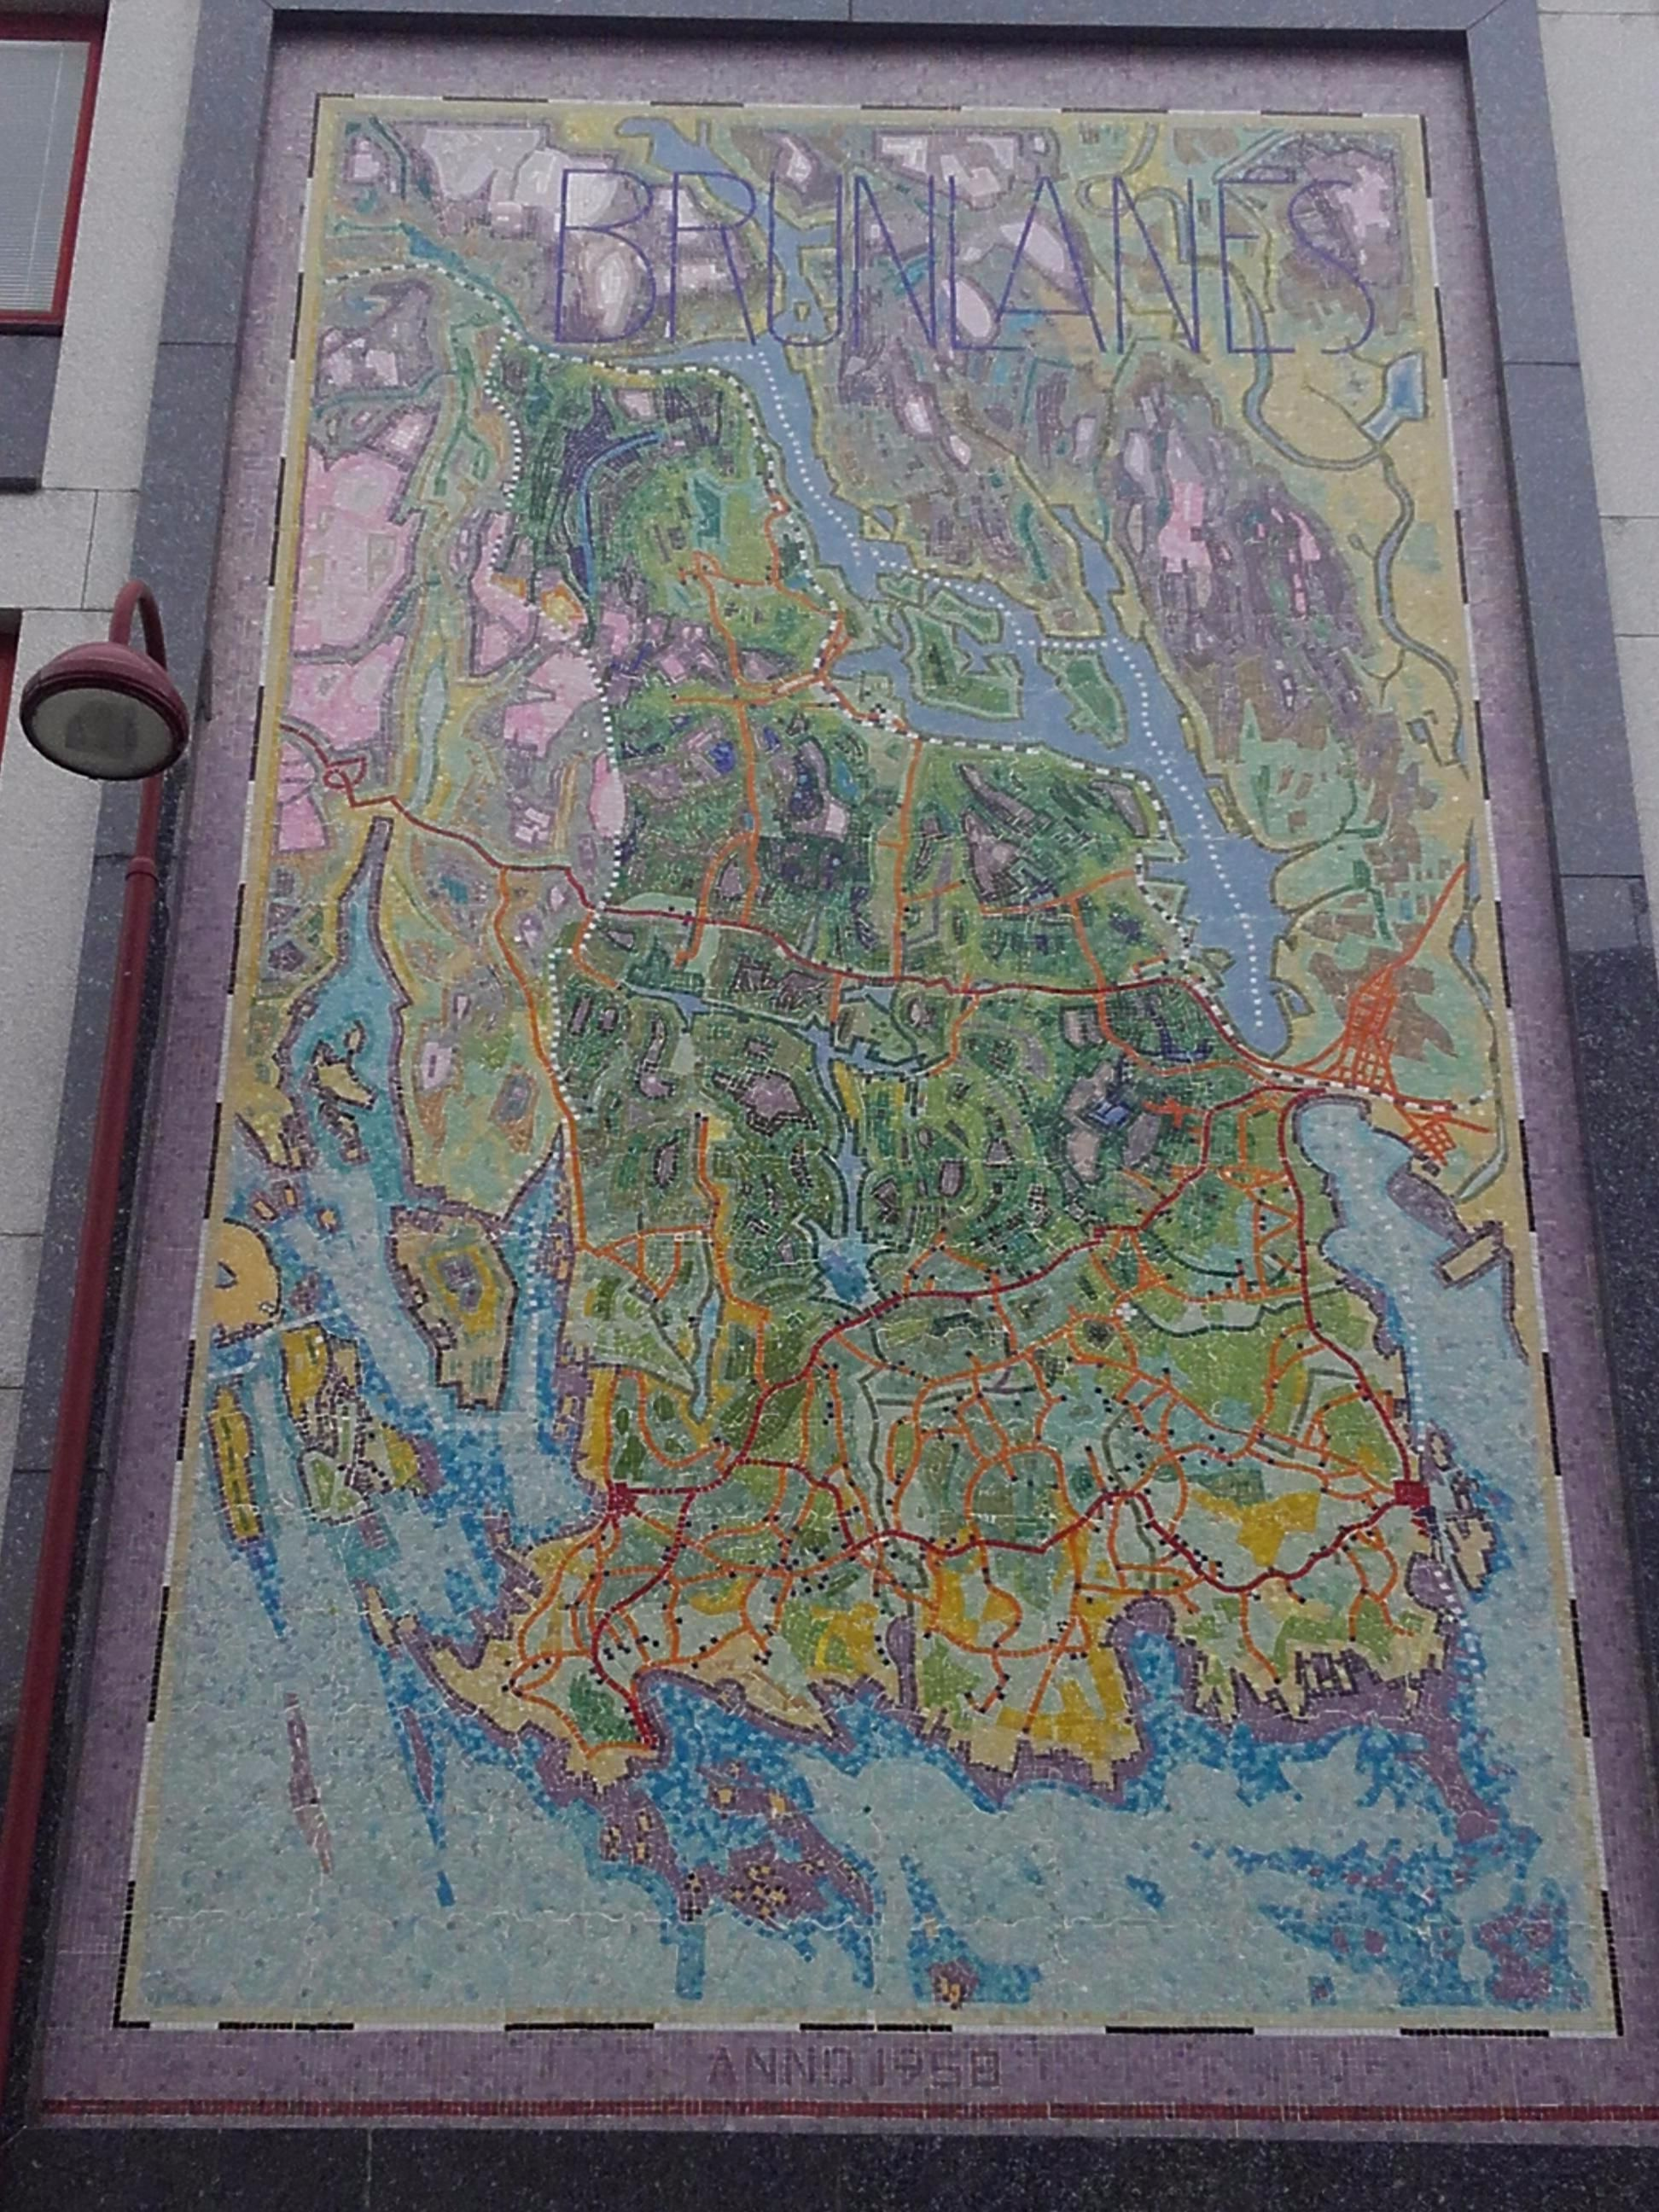 Mosaic Map Of The Brunlanes Area In Larvik Norway MAPS - Norway map larvik